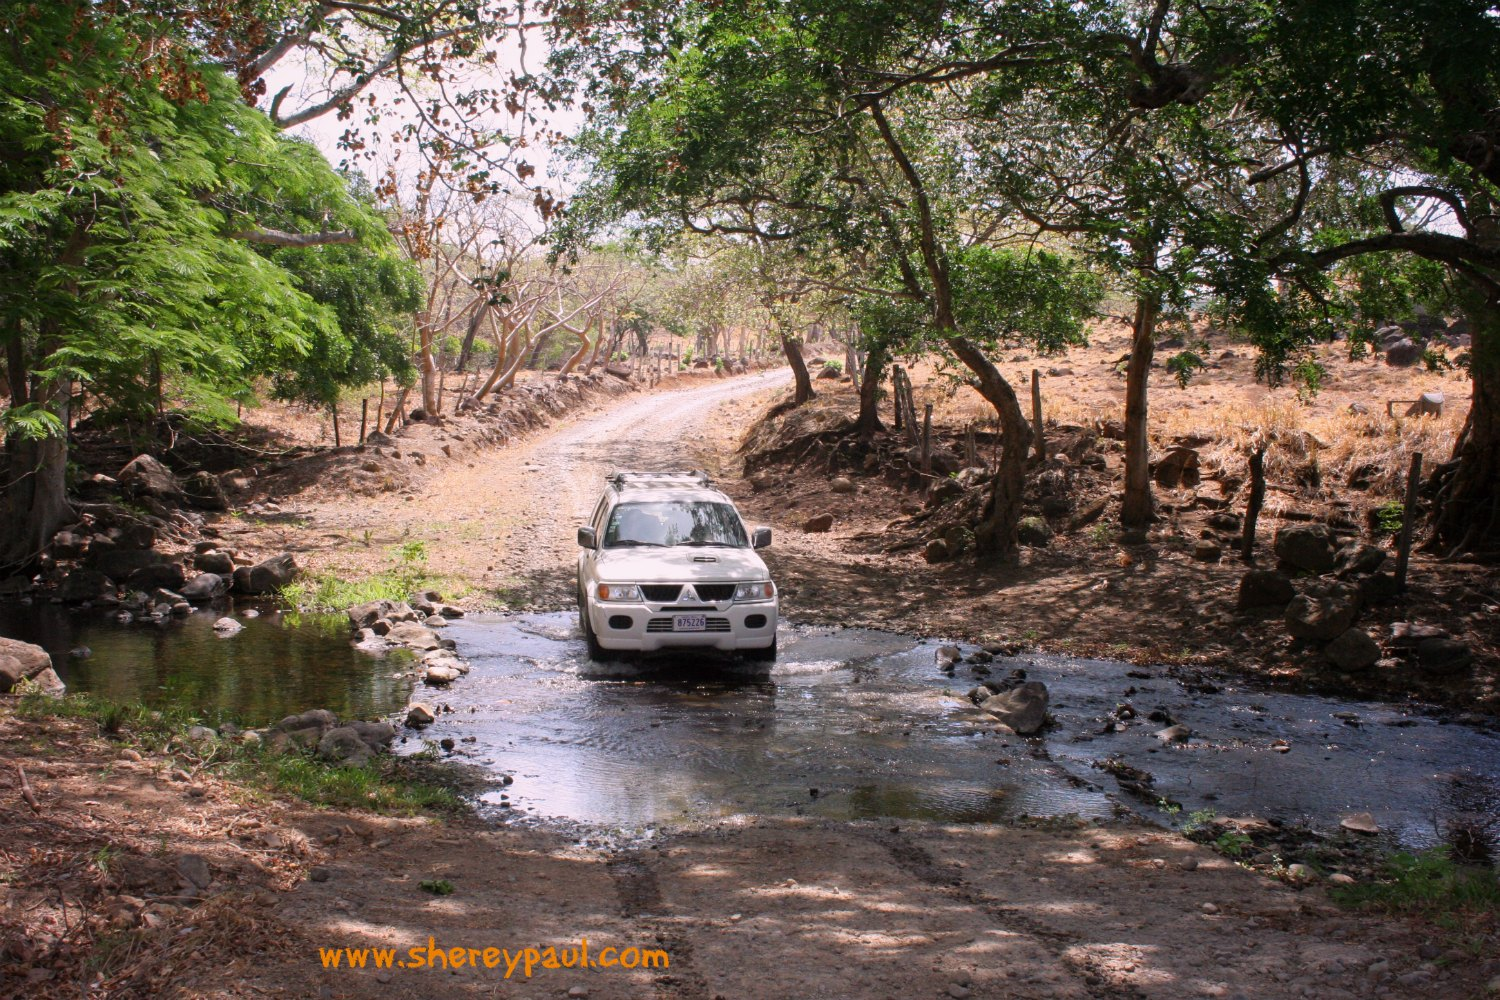 off road driving from Rio Celeste to Miravalles